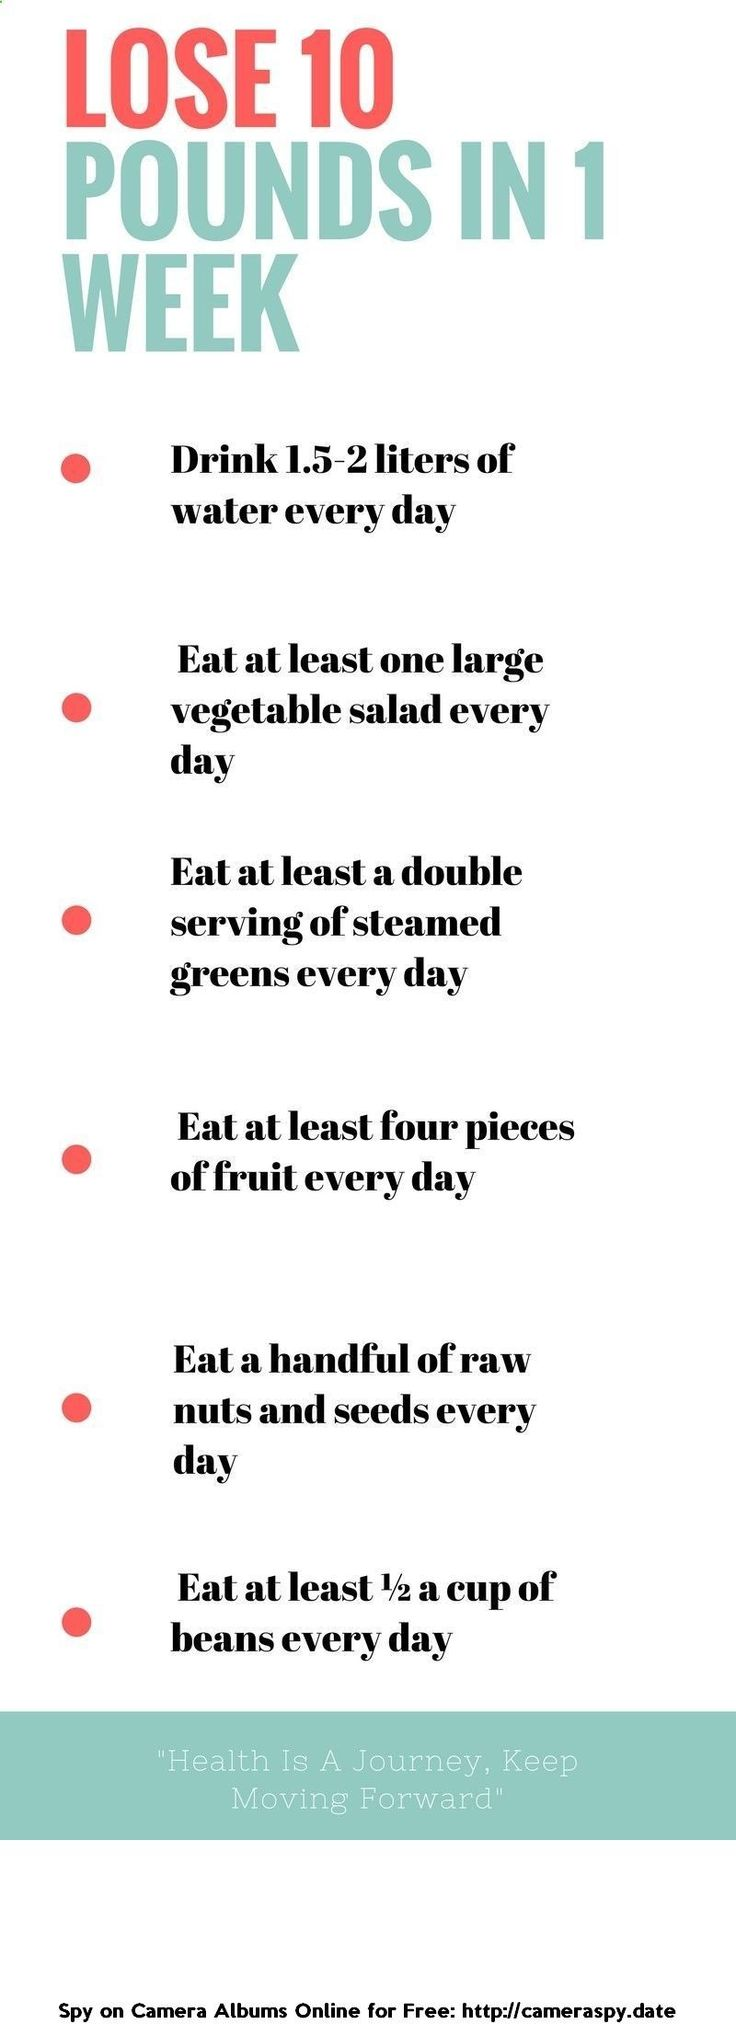 How to lose 10 pounds in a week: two fast weight loss tips that cause you to lose as much as 10 pounds in one week individually. #lose10poundsinaweek